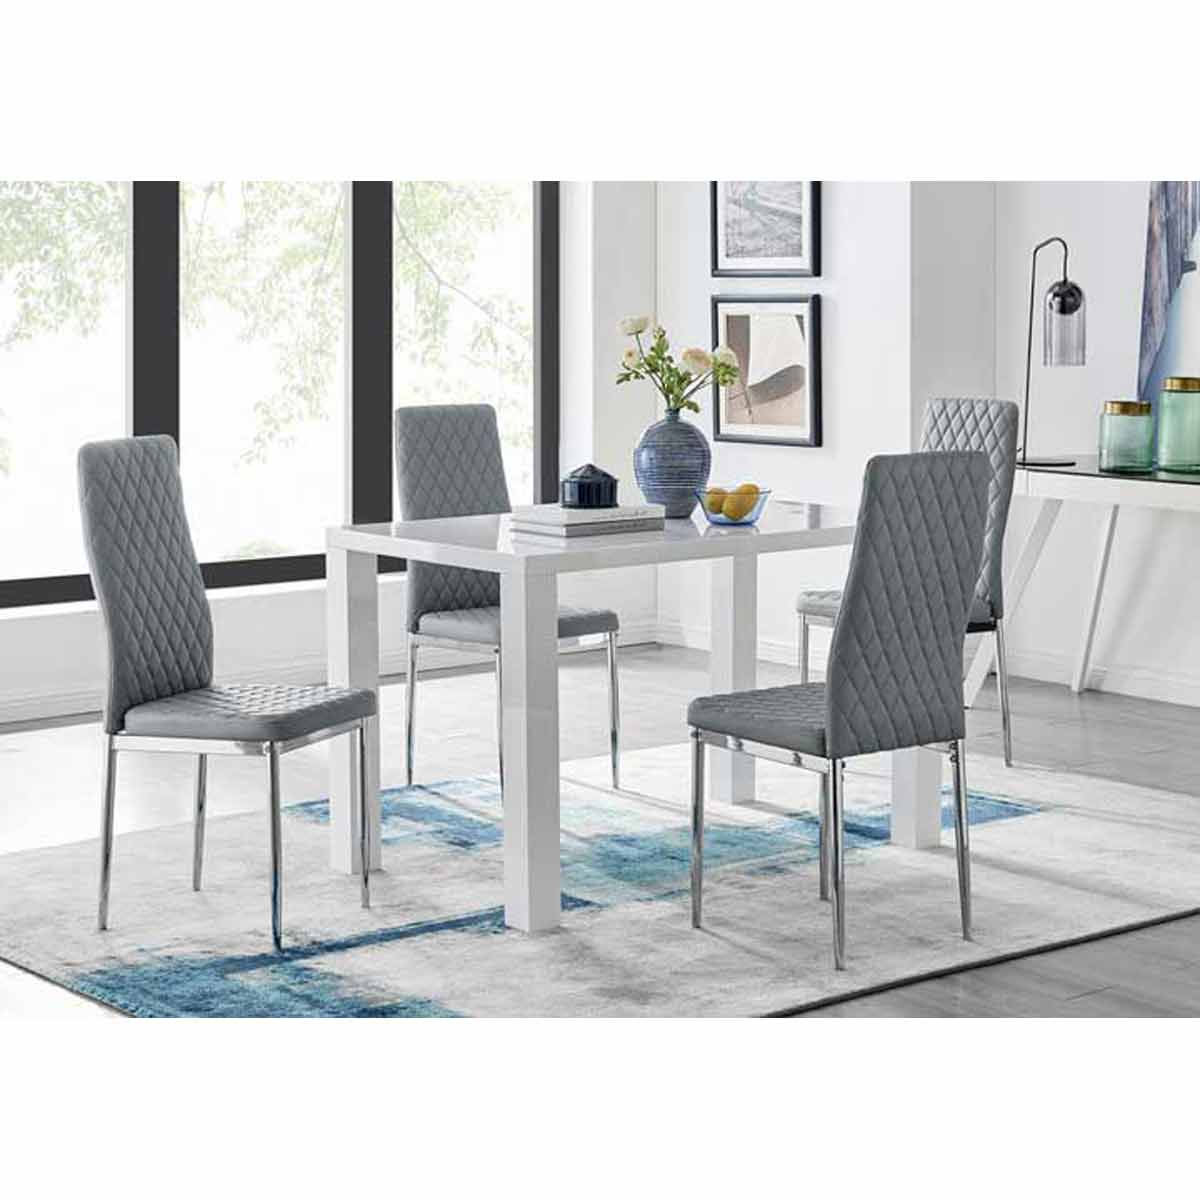 Furniture Box Pivero White High Gloss Dining Table and 4 Elephant Grey Milan Chairs Set